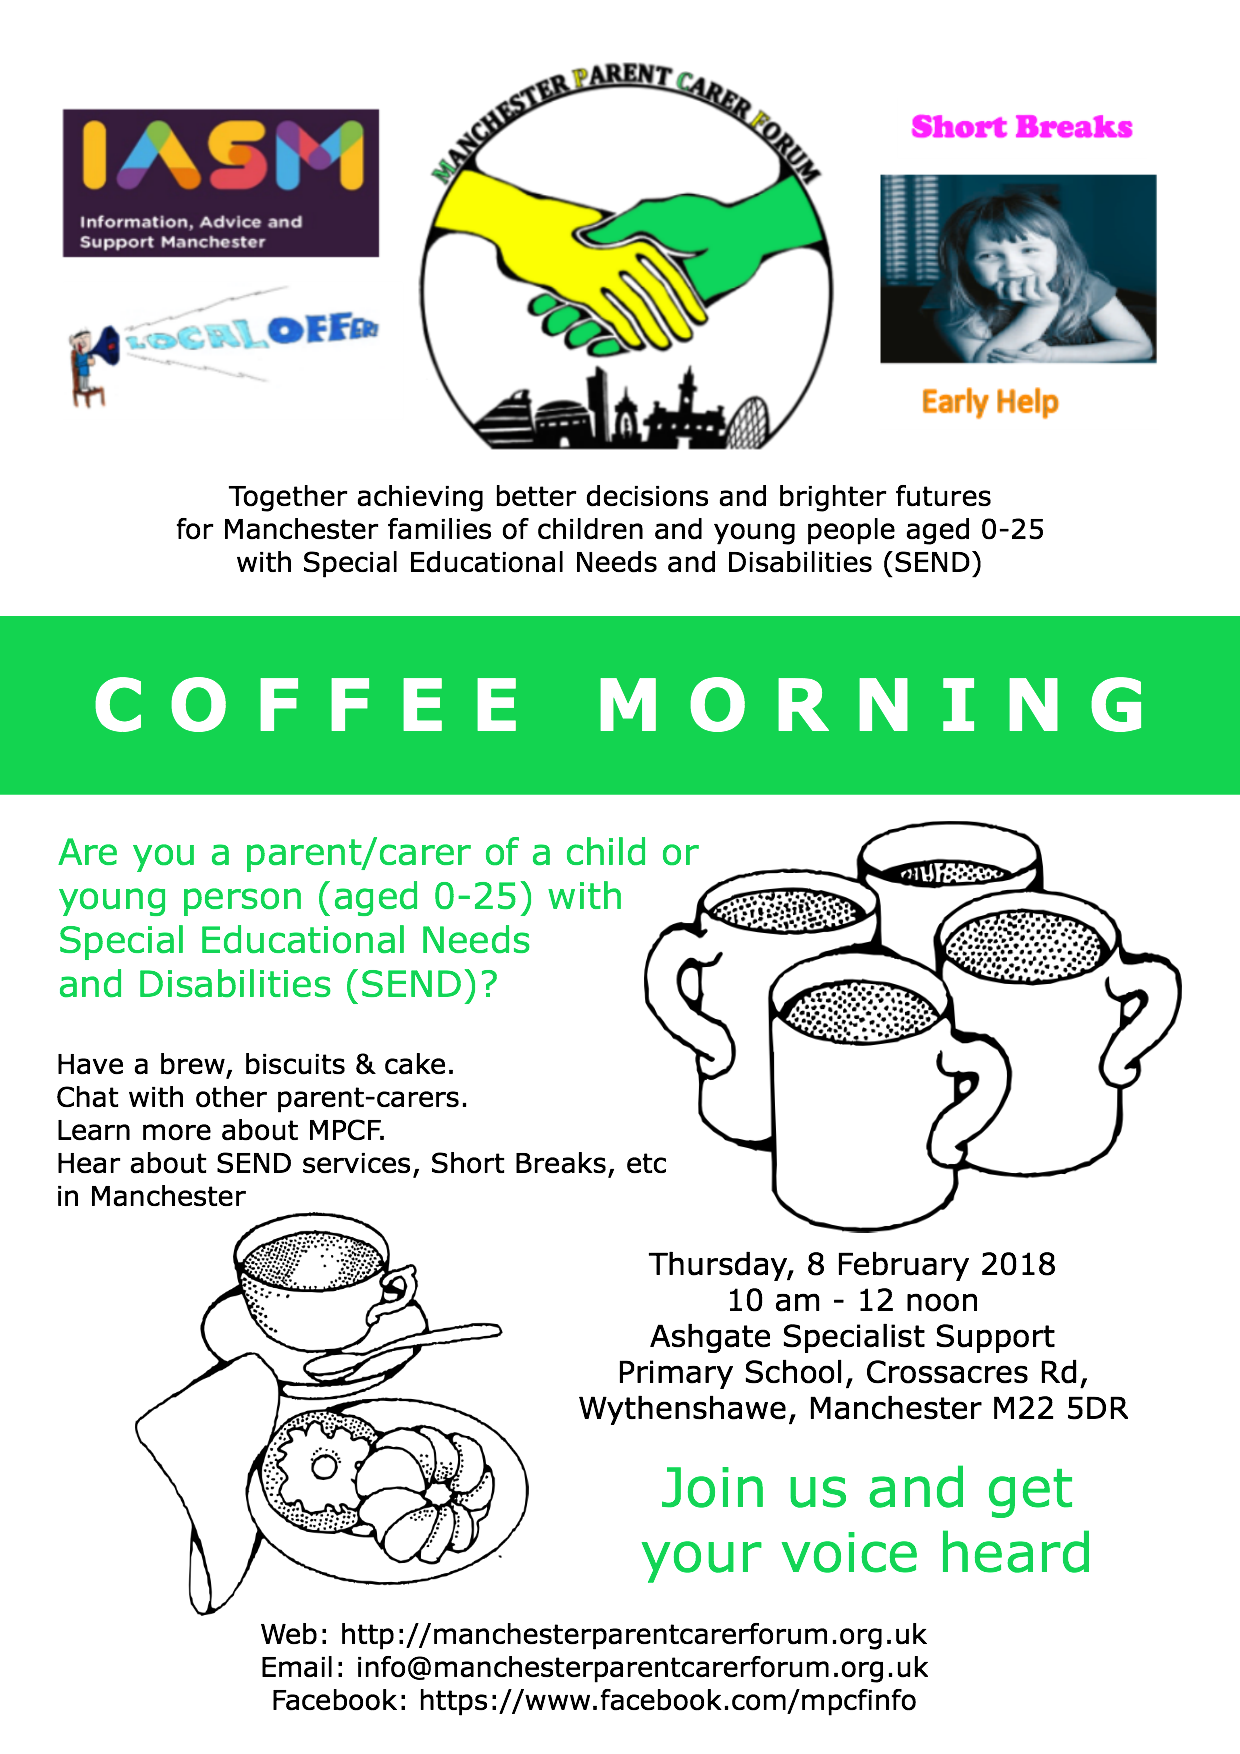 Flyer for MPCF's coffee morning at Ashgate Specialist Support Primary School